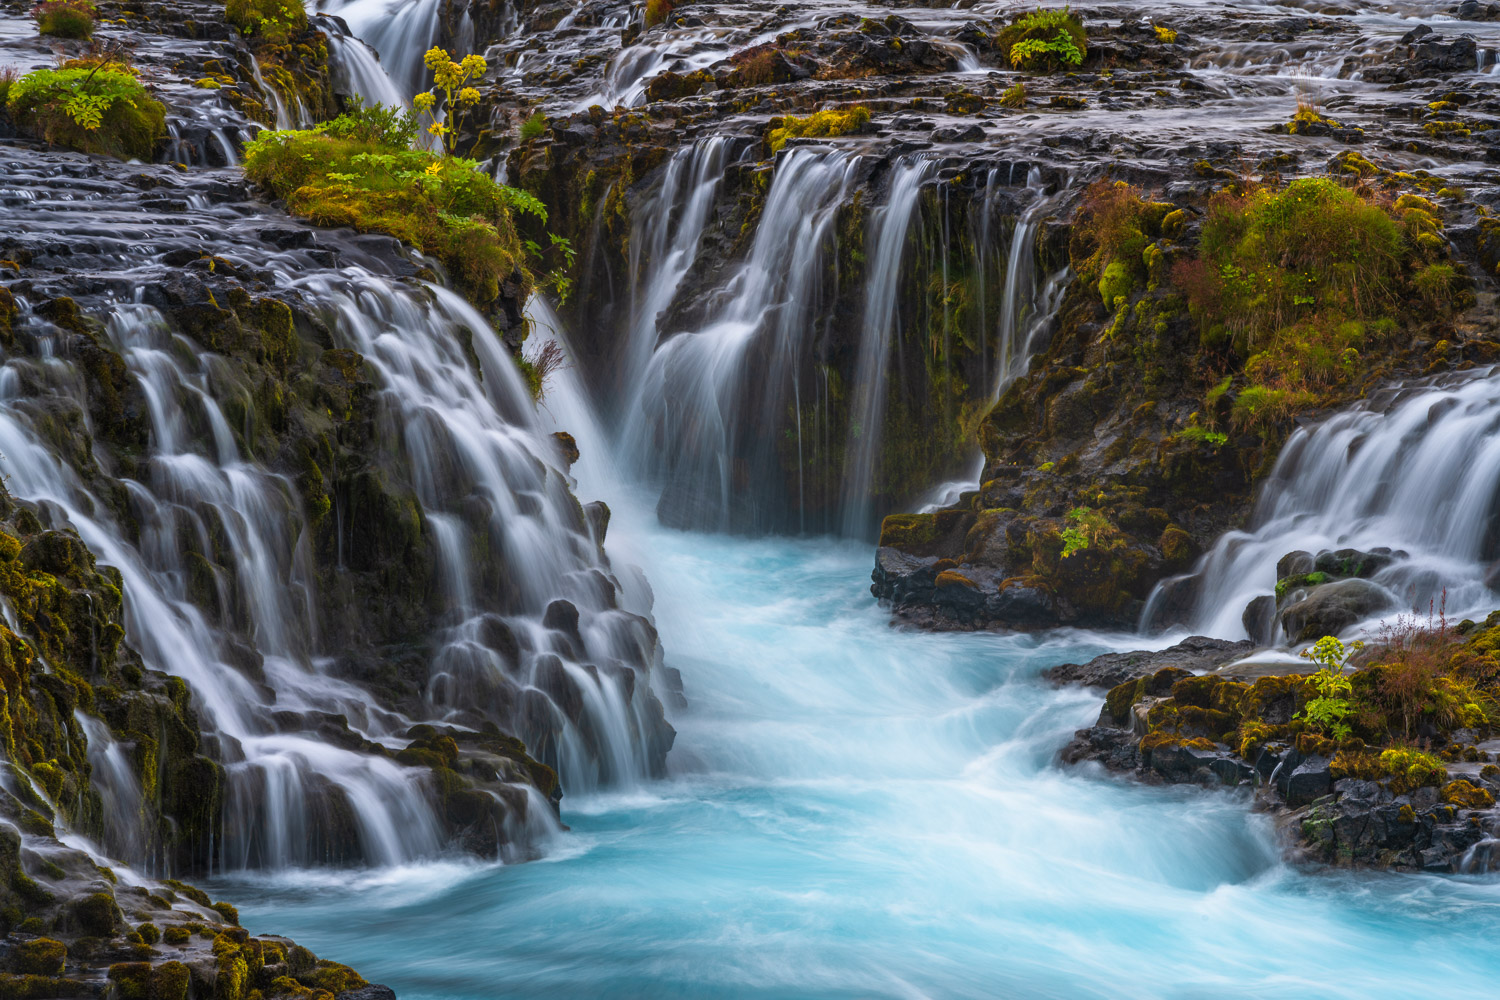 Enhance your space with Joseph's limited edition fine art print, Brúarfoss, showcasing the raw power and beauty of the Icelandic...